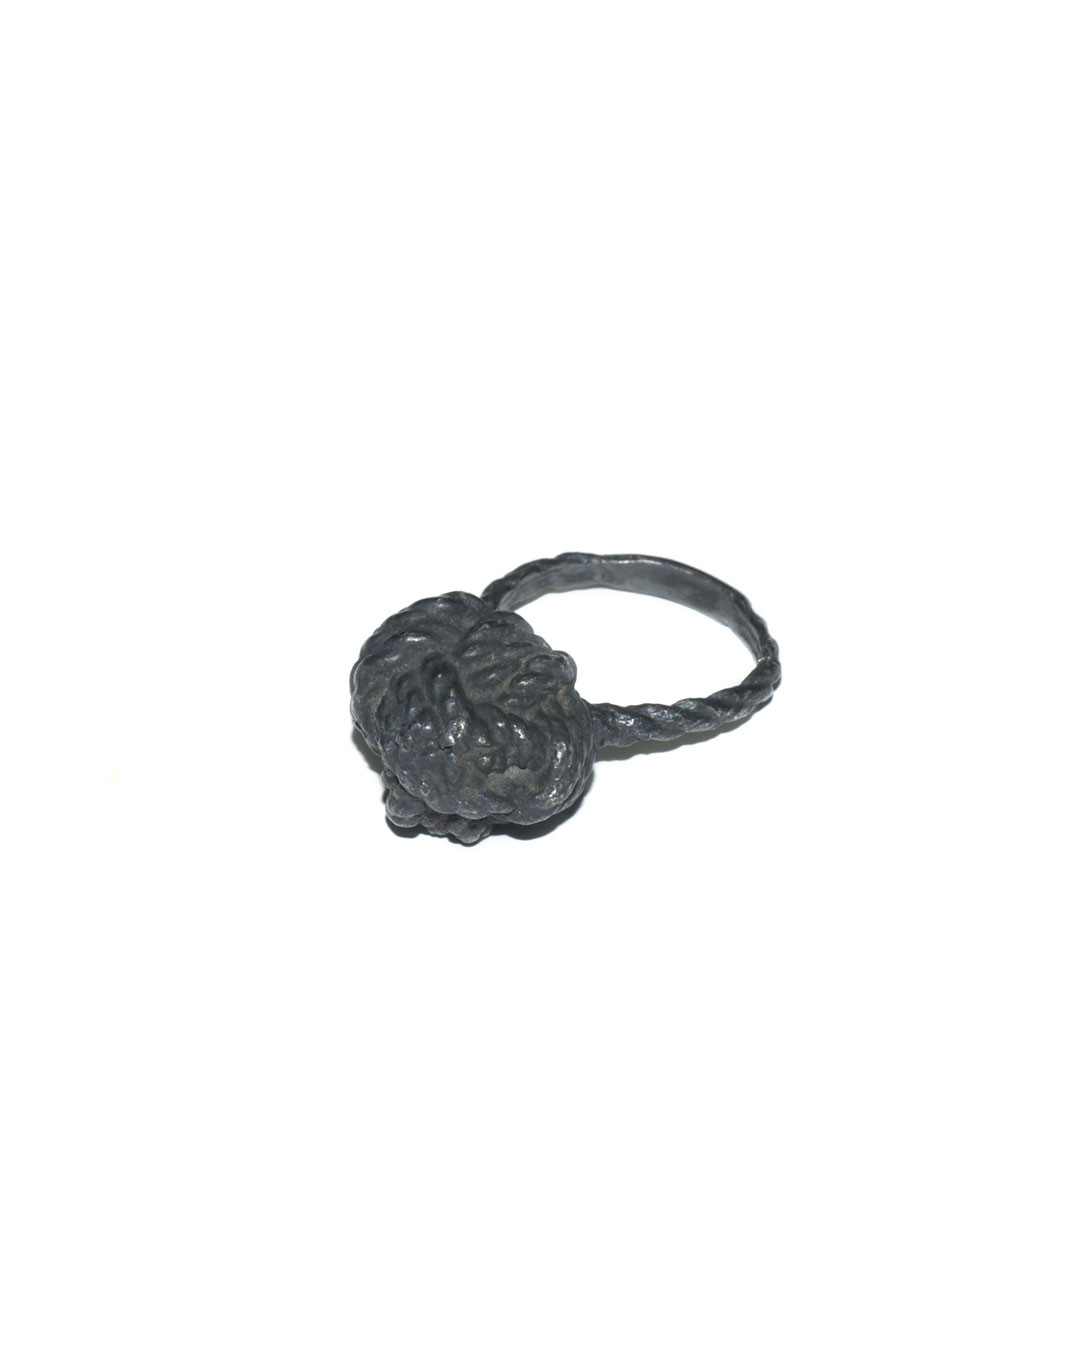 Willemijn de Greef, Touw (Rope), 2010, ring; silver, H 35 mm, €150